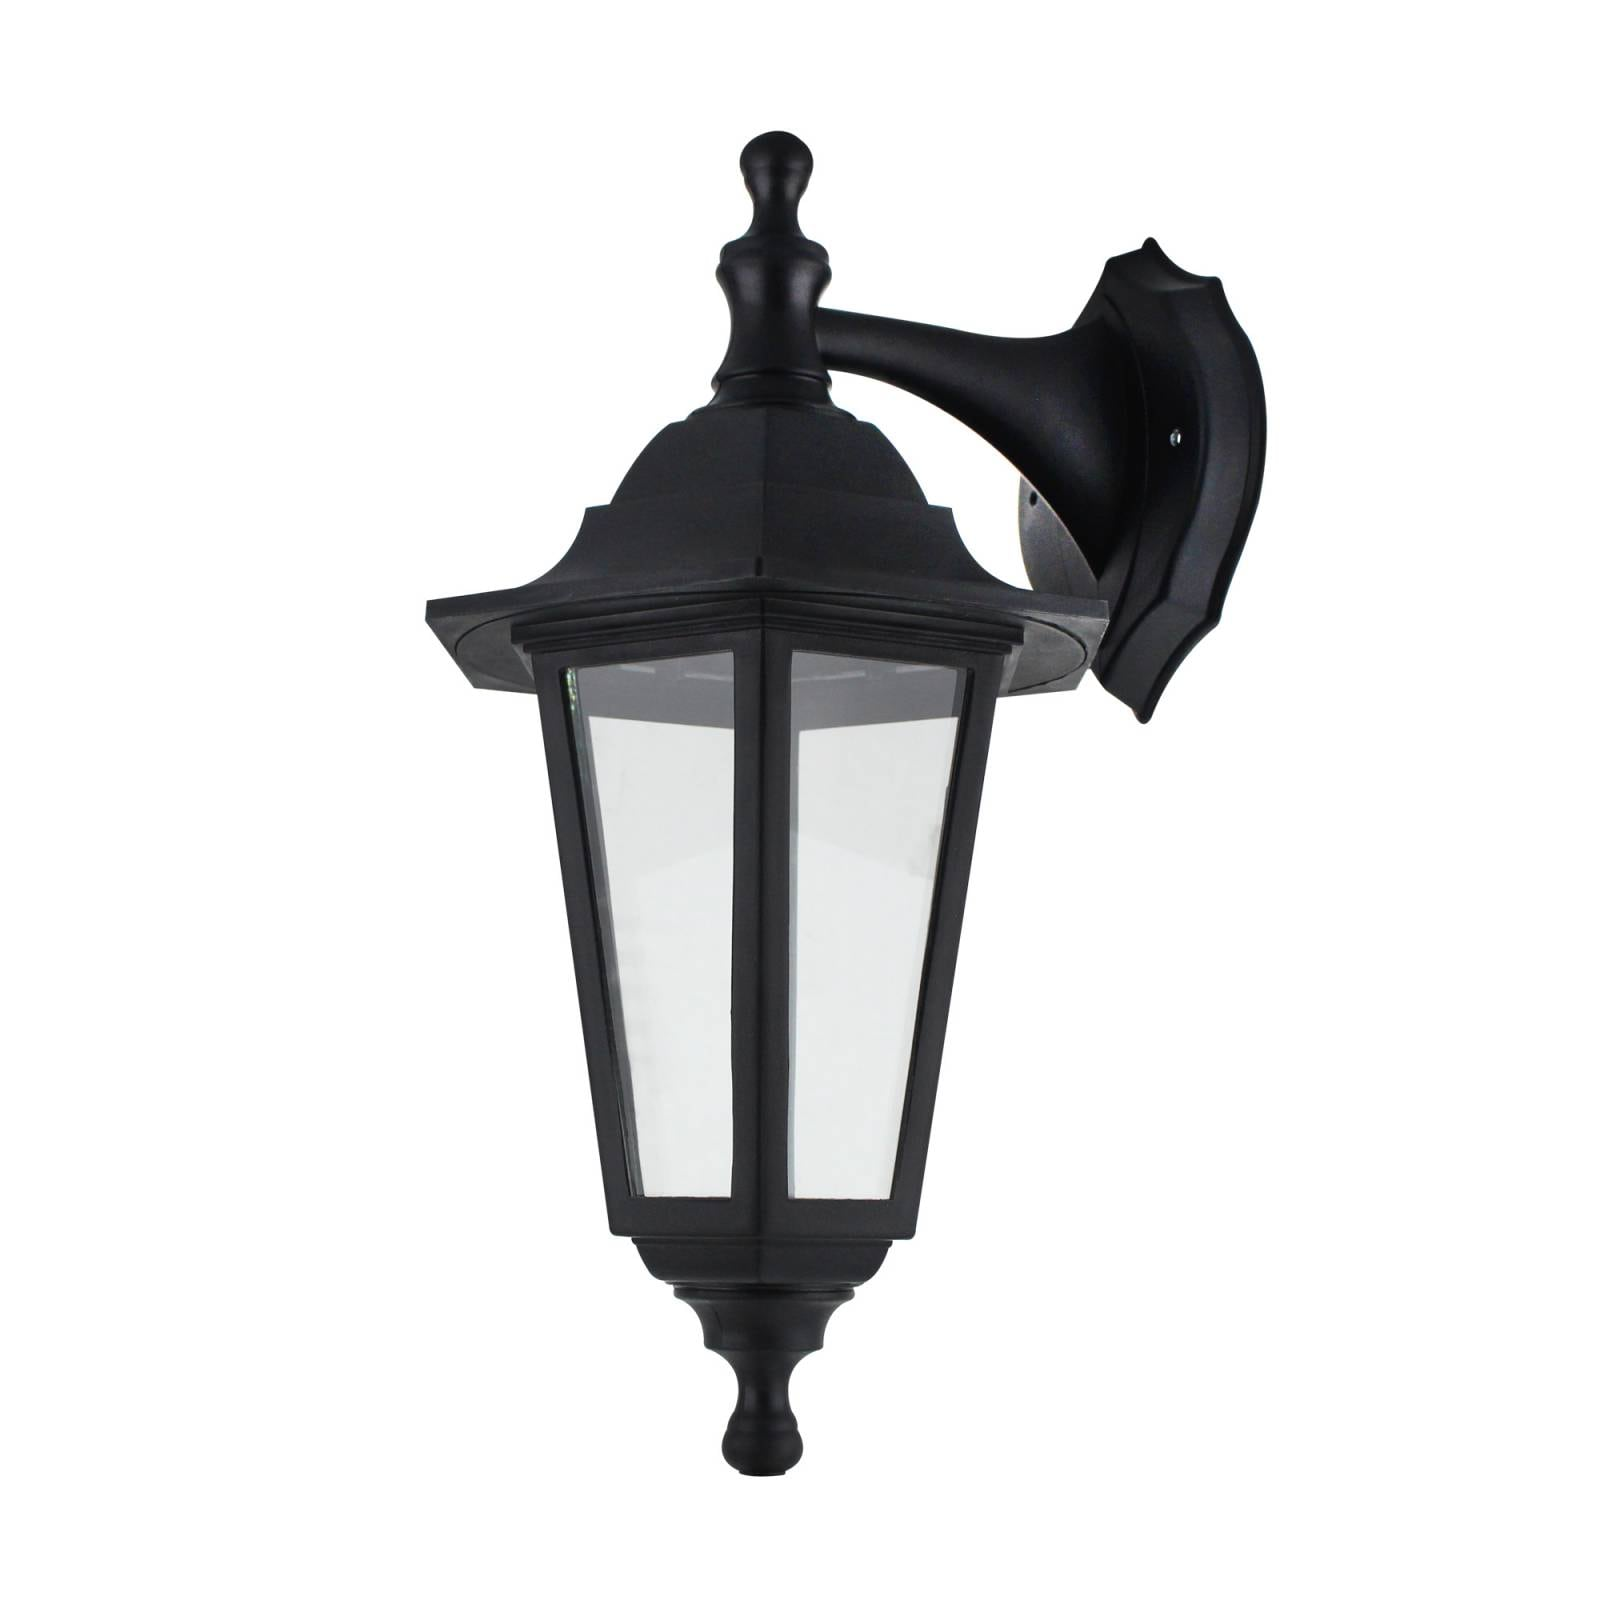 Farol de Pared Colonial Negro Sanelec 1232